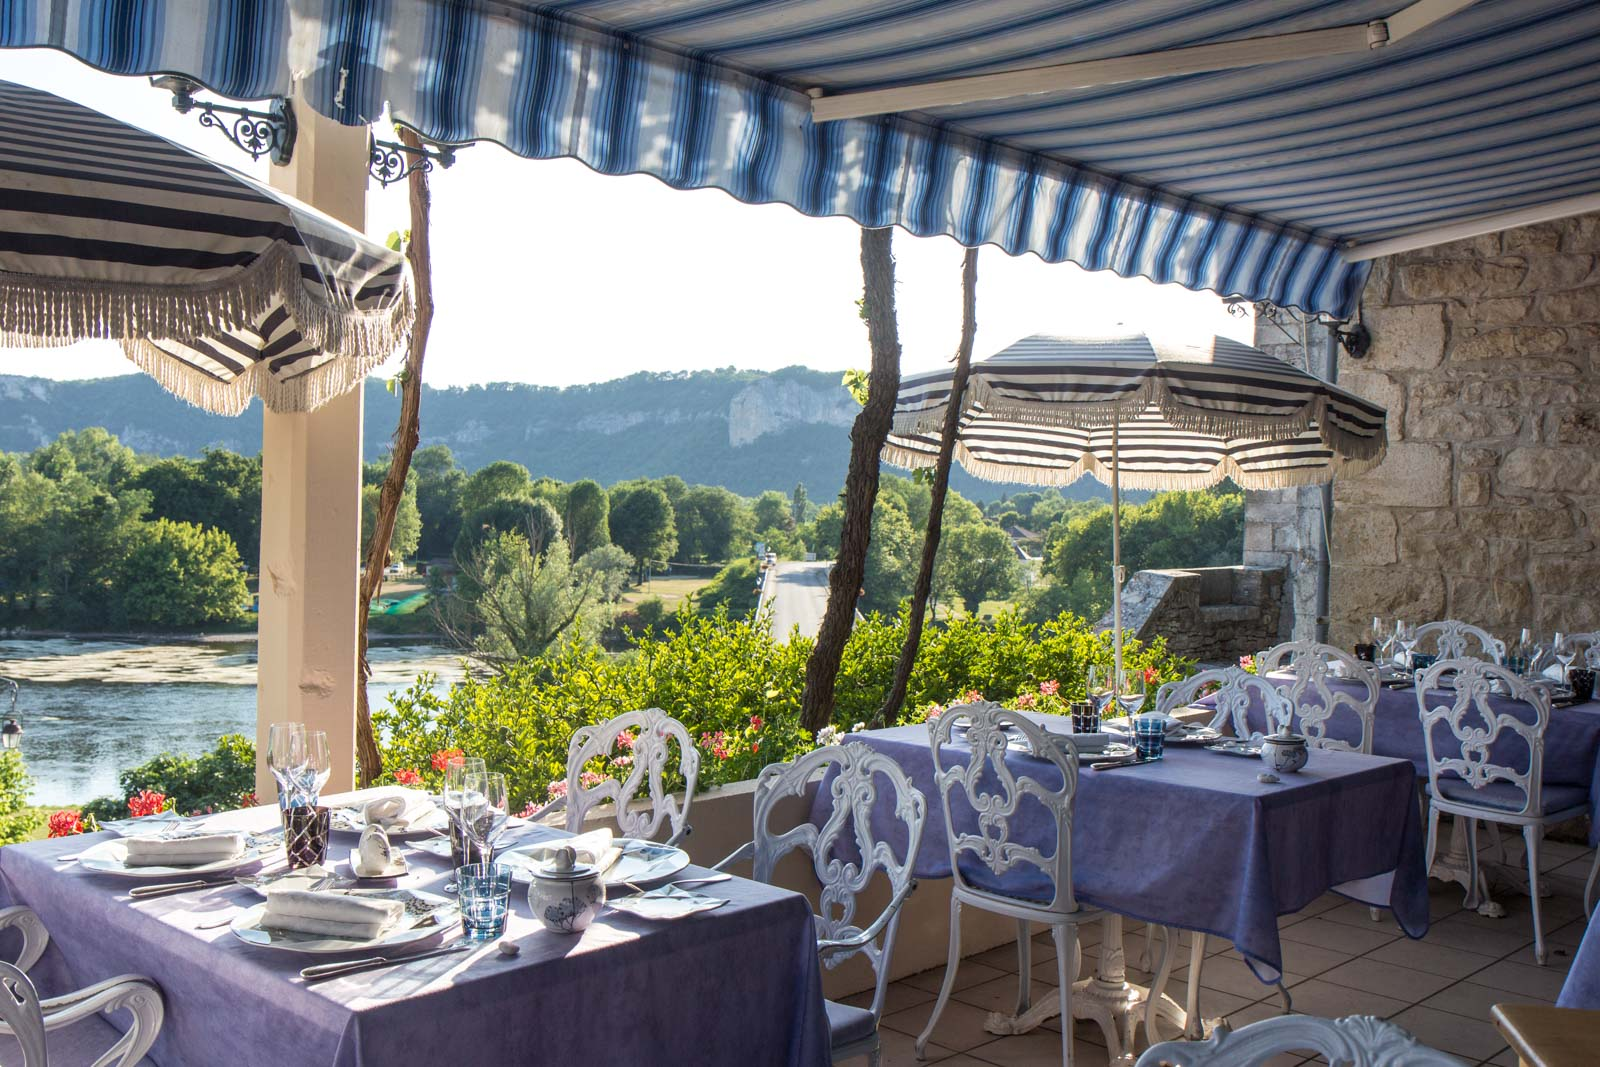 Restaurant La Terrasse Meyronne My Active Dordogne Trip With Headwater Holidays In France